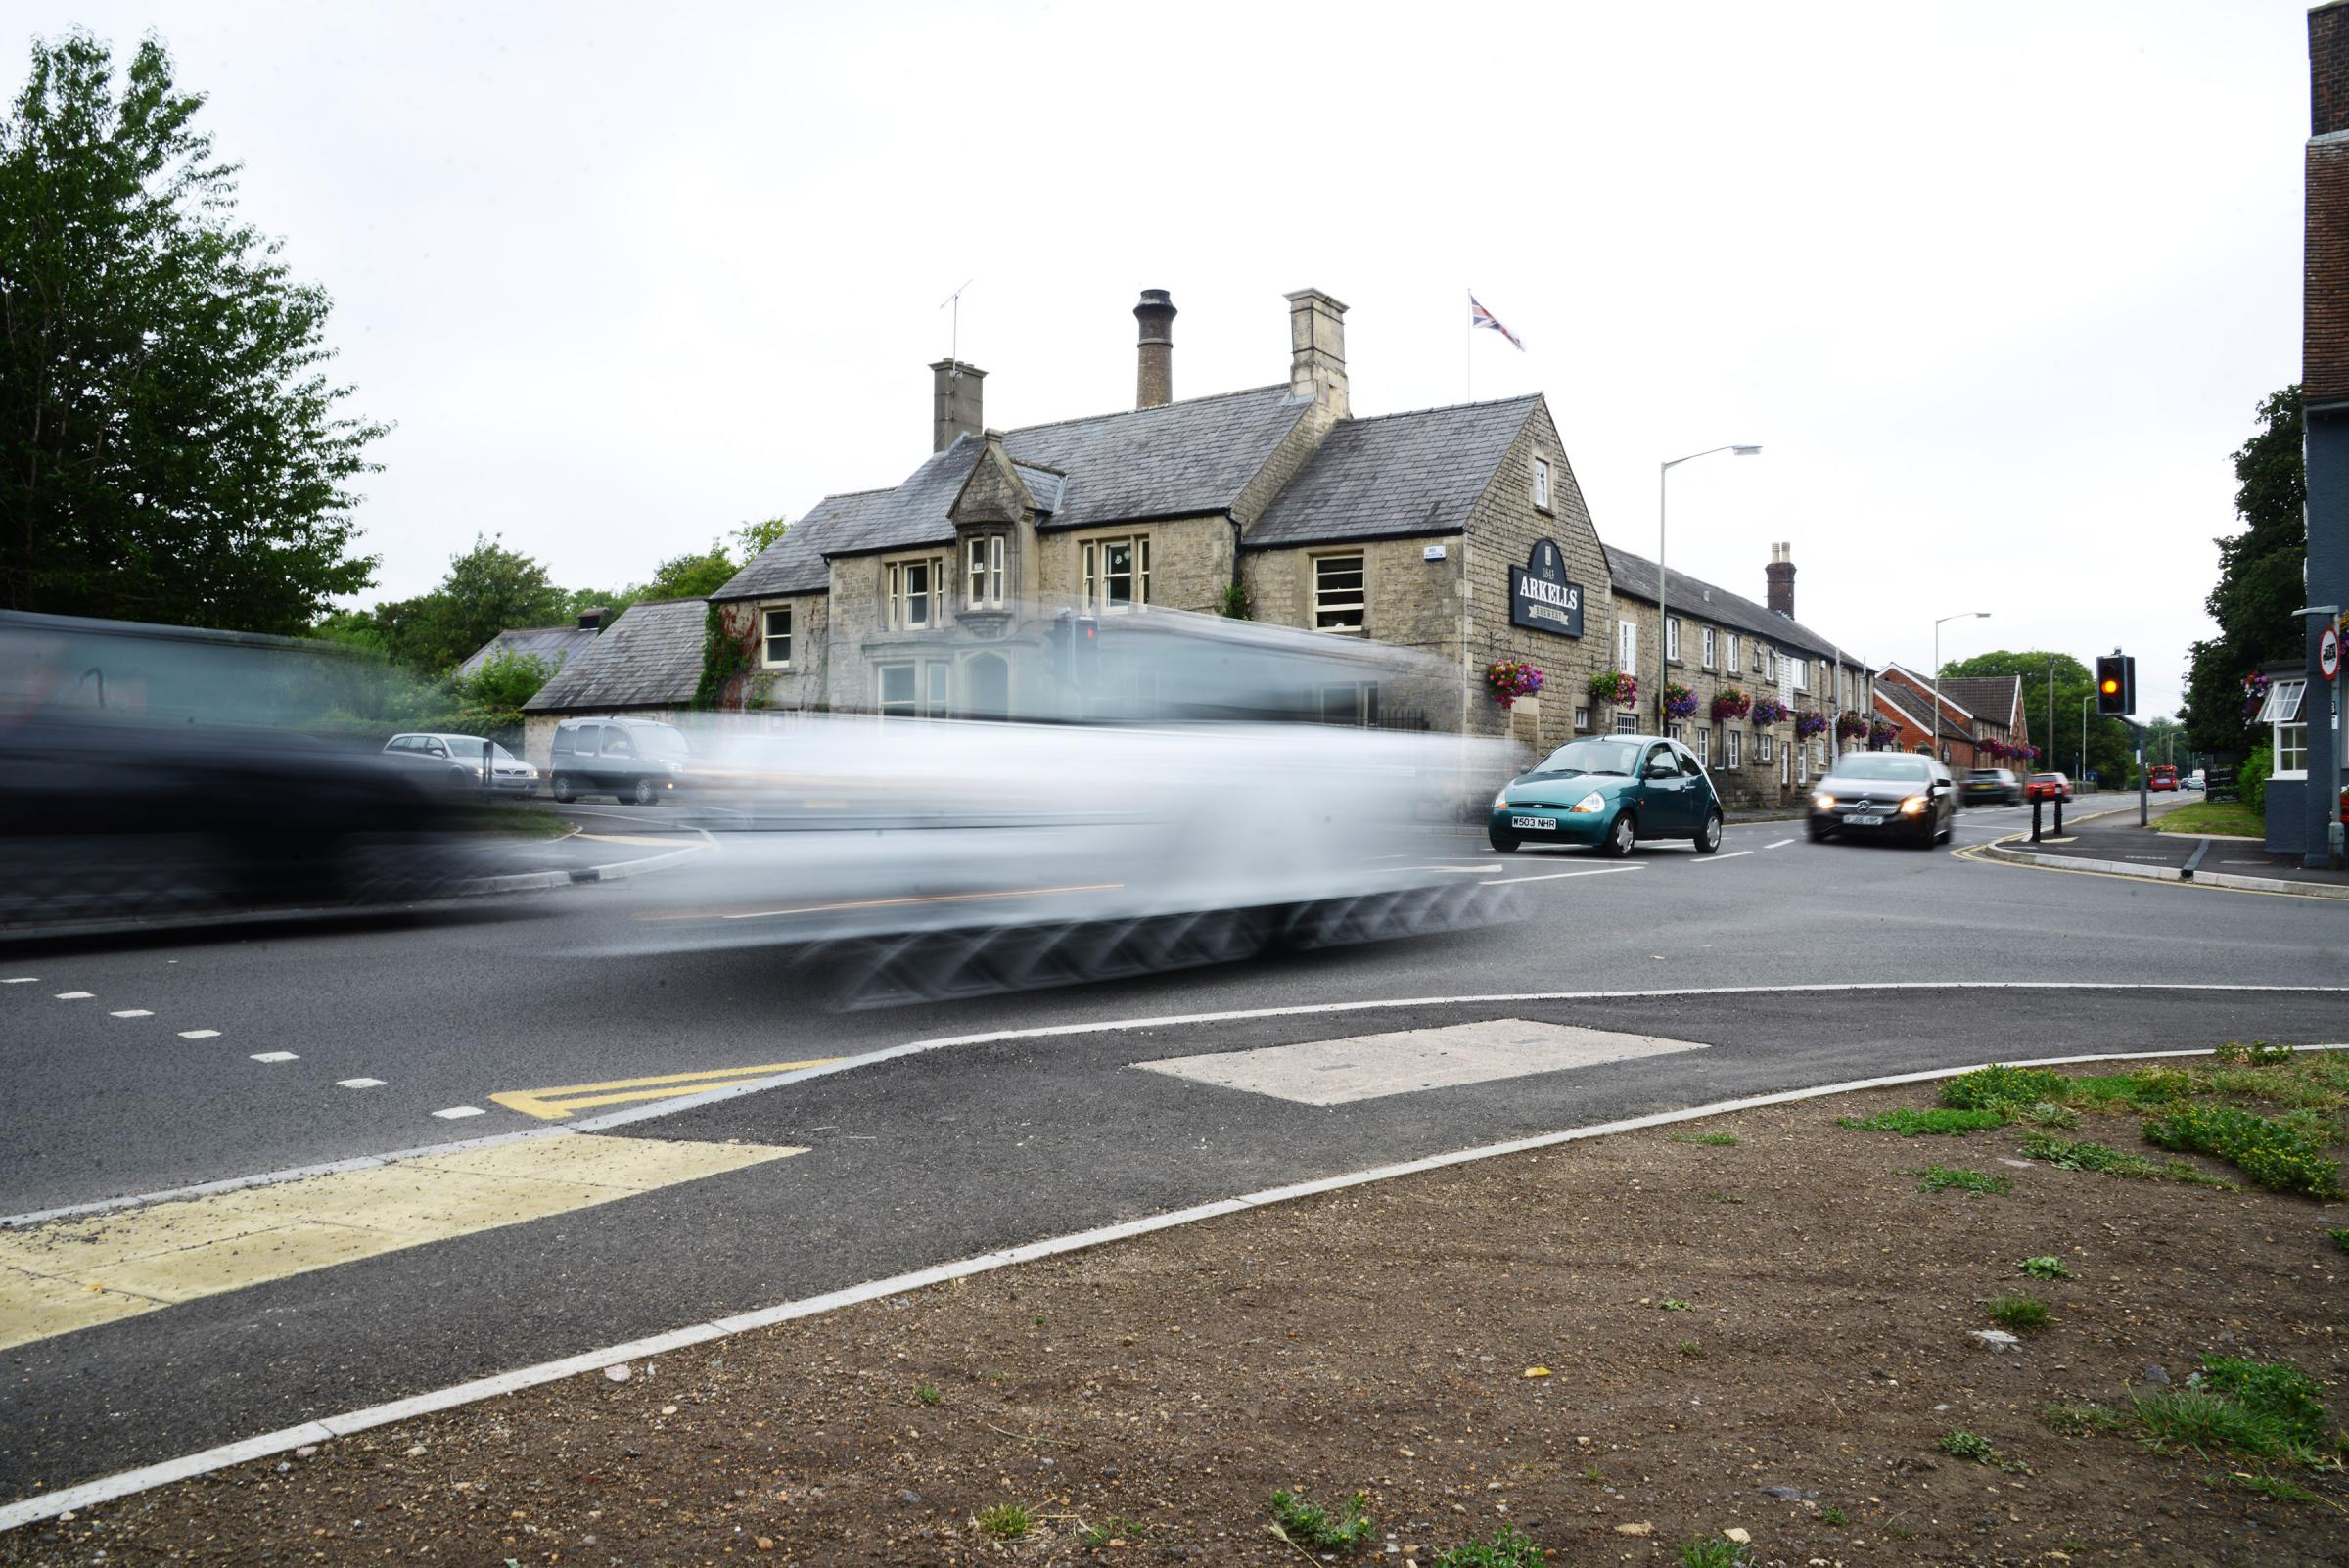 FRUSTRATING: A Gazette reader hopes the authorities will tackle the speeding issue after her husband's near-miss